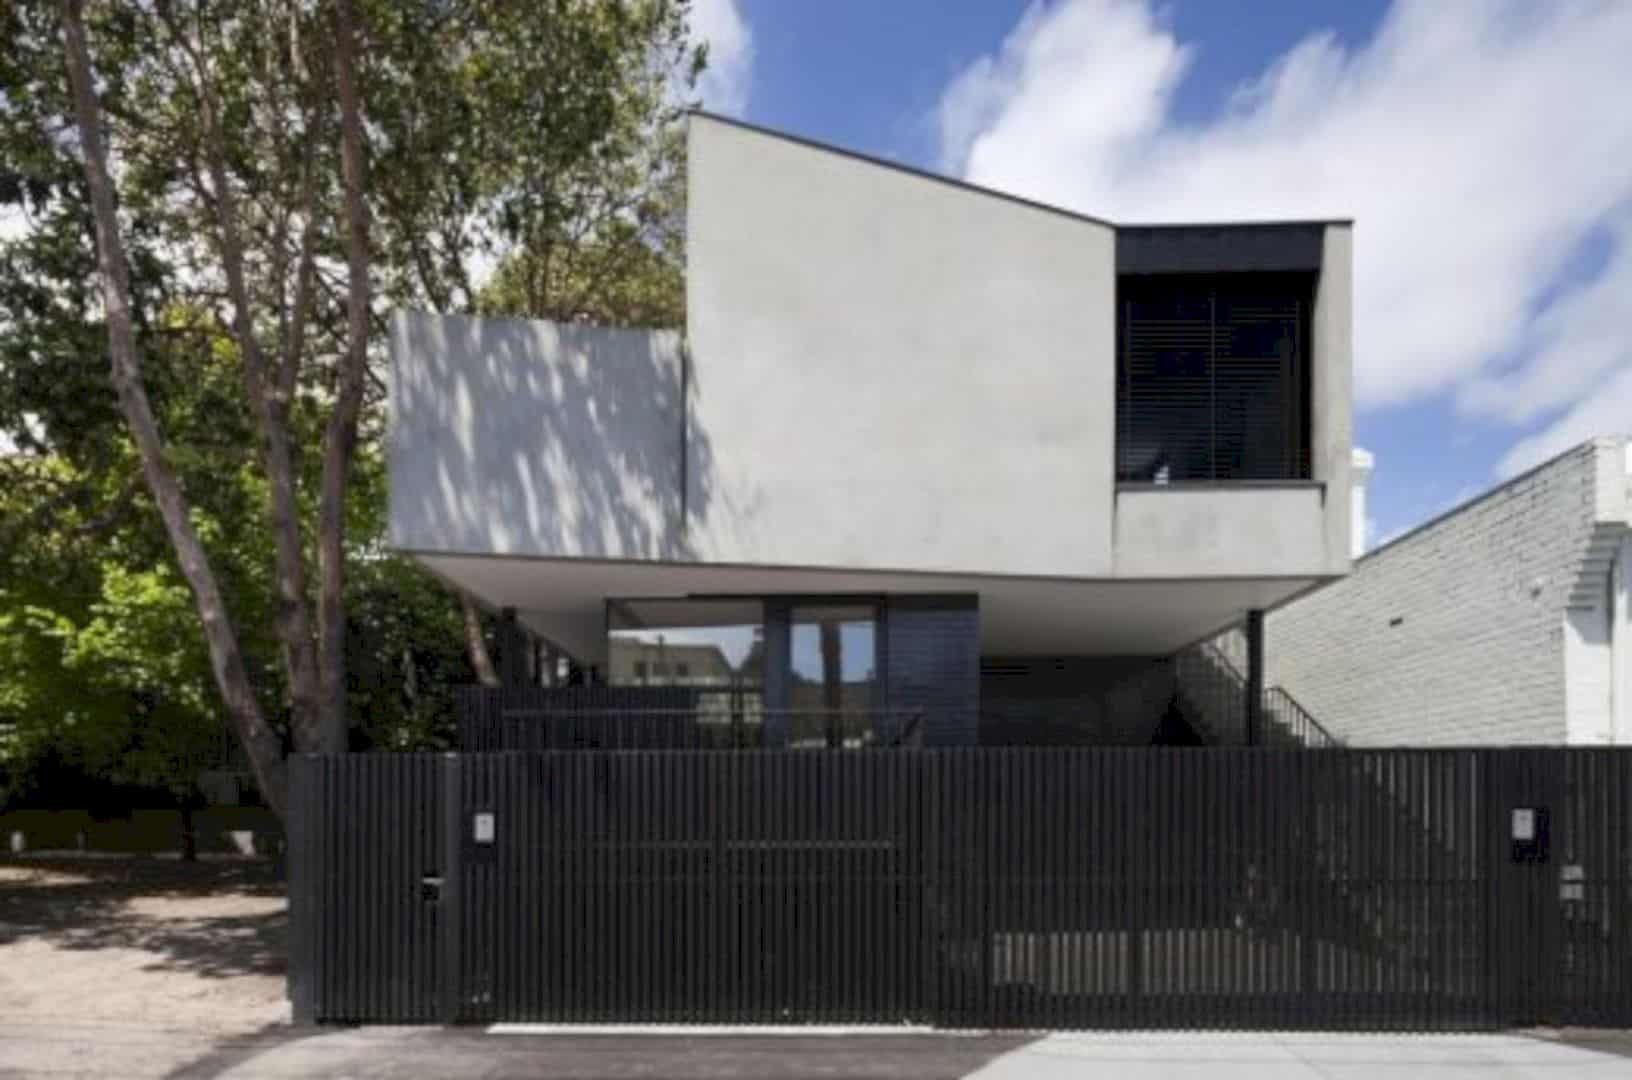 South Yarra Apartments A Uniquely Positioned Property In Melbourne 5